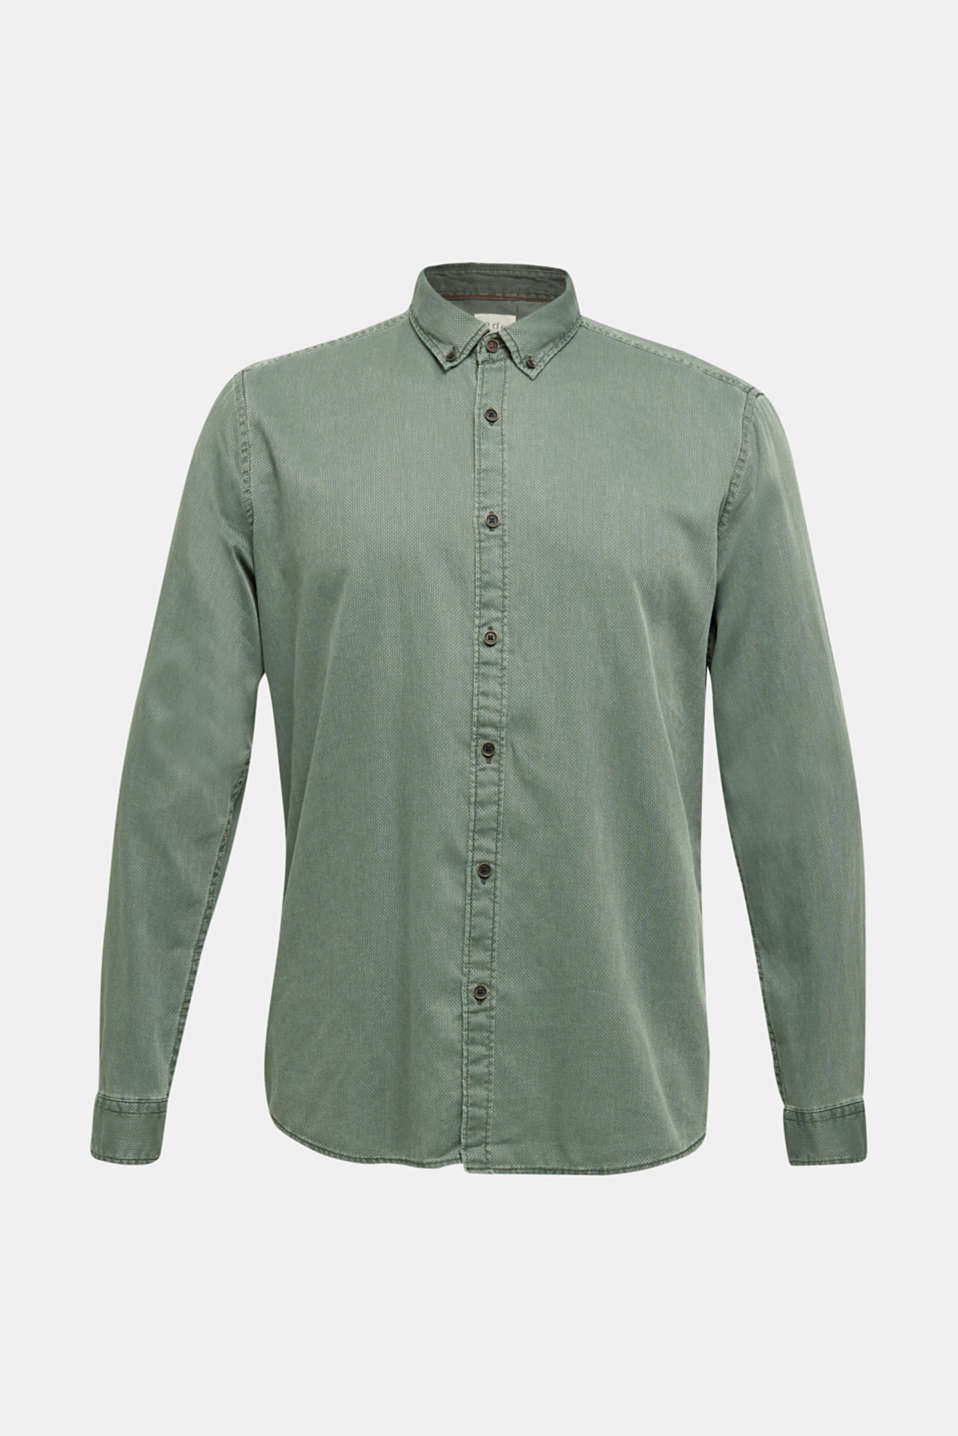 Shirt with a checked texture, 100% cotton, KHAKI GREEN 5, detail image number 8